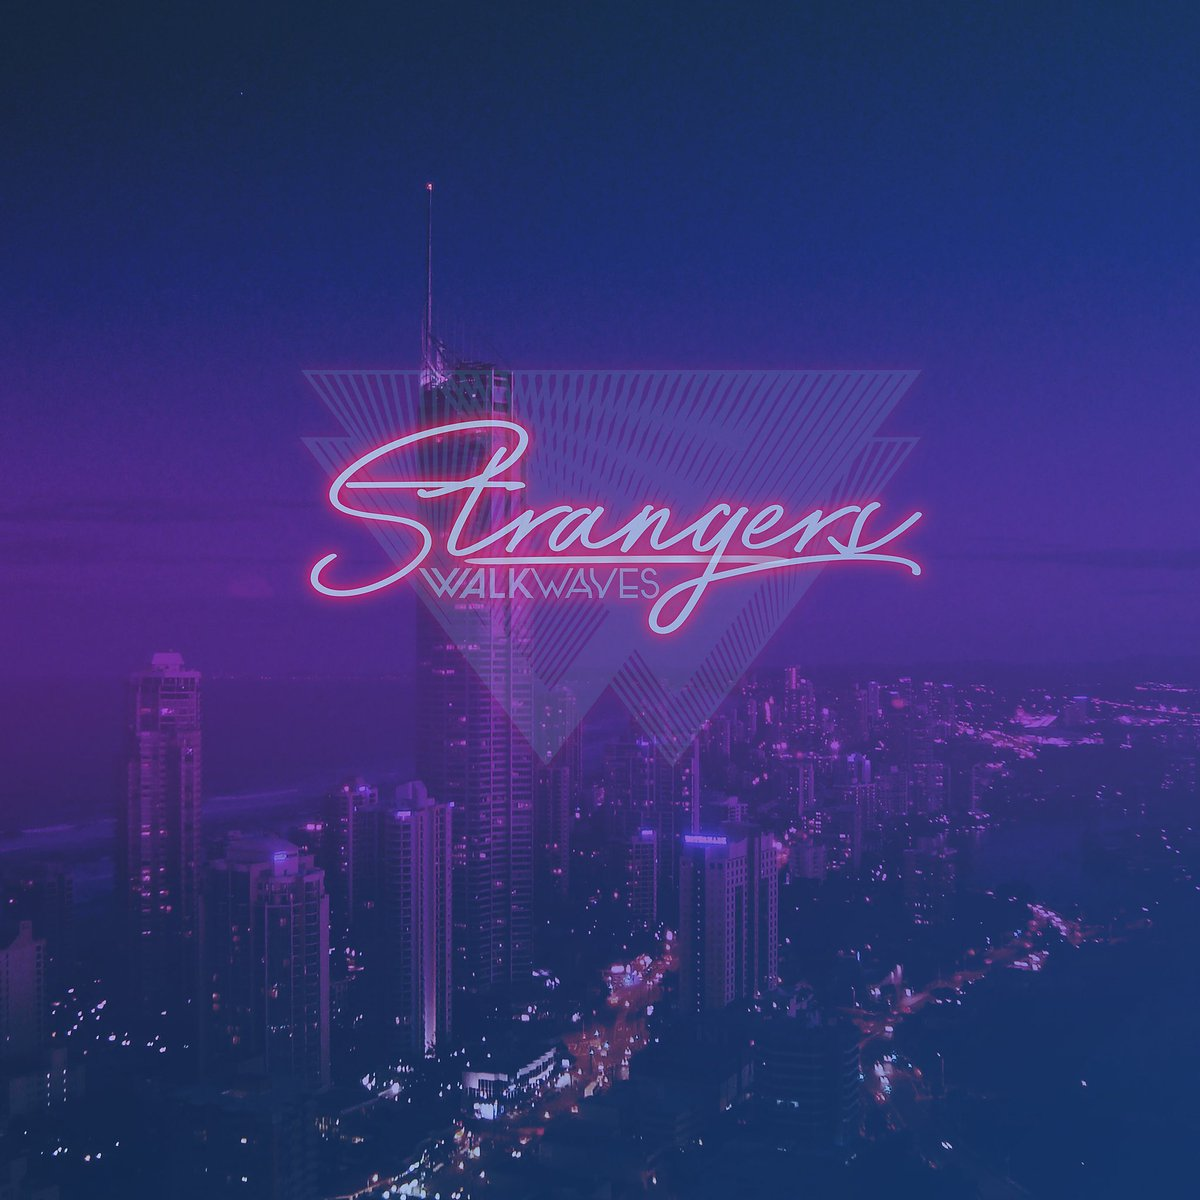 """ONE WEEK AWAY! Our new release """"Strangers"""" will be available on all streaming platforms Aug 24th!  #NewMusicFriday #NewMusicAlert #NewMusic #albumart #albumcover #retro #neon #NewSingle #NewRelease #ComingSoon #Spotify #AppleMusic #streaming #indie #electronicmusic #walkwaves<br>http://pic.twitter.com/yZ9E17wm74"""